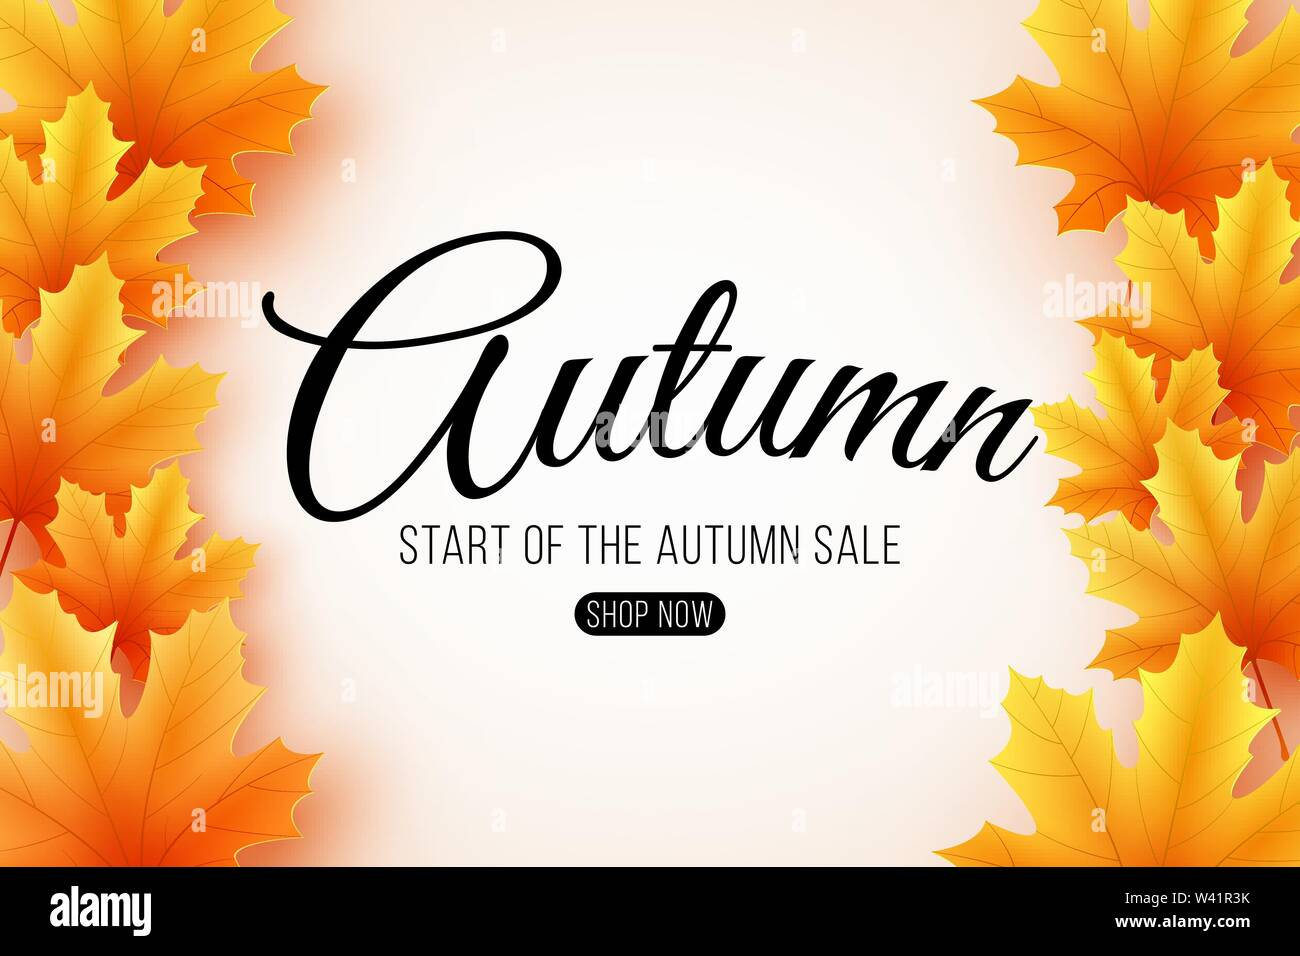 Autumn sale. Web banner with lettering. Seasonal poster with autumn leaves. Maple leaf. Start of a seasonal sale. Vector illustration. EPS 10 - Stock Image